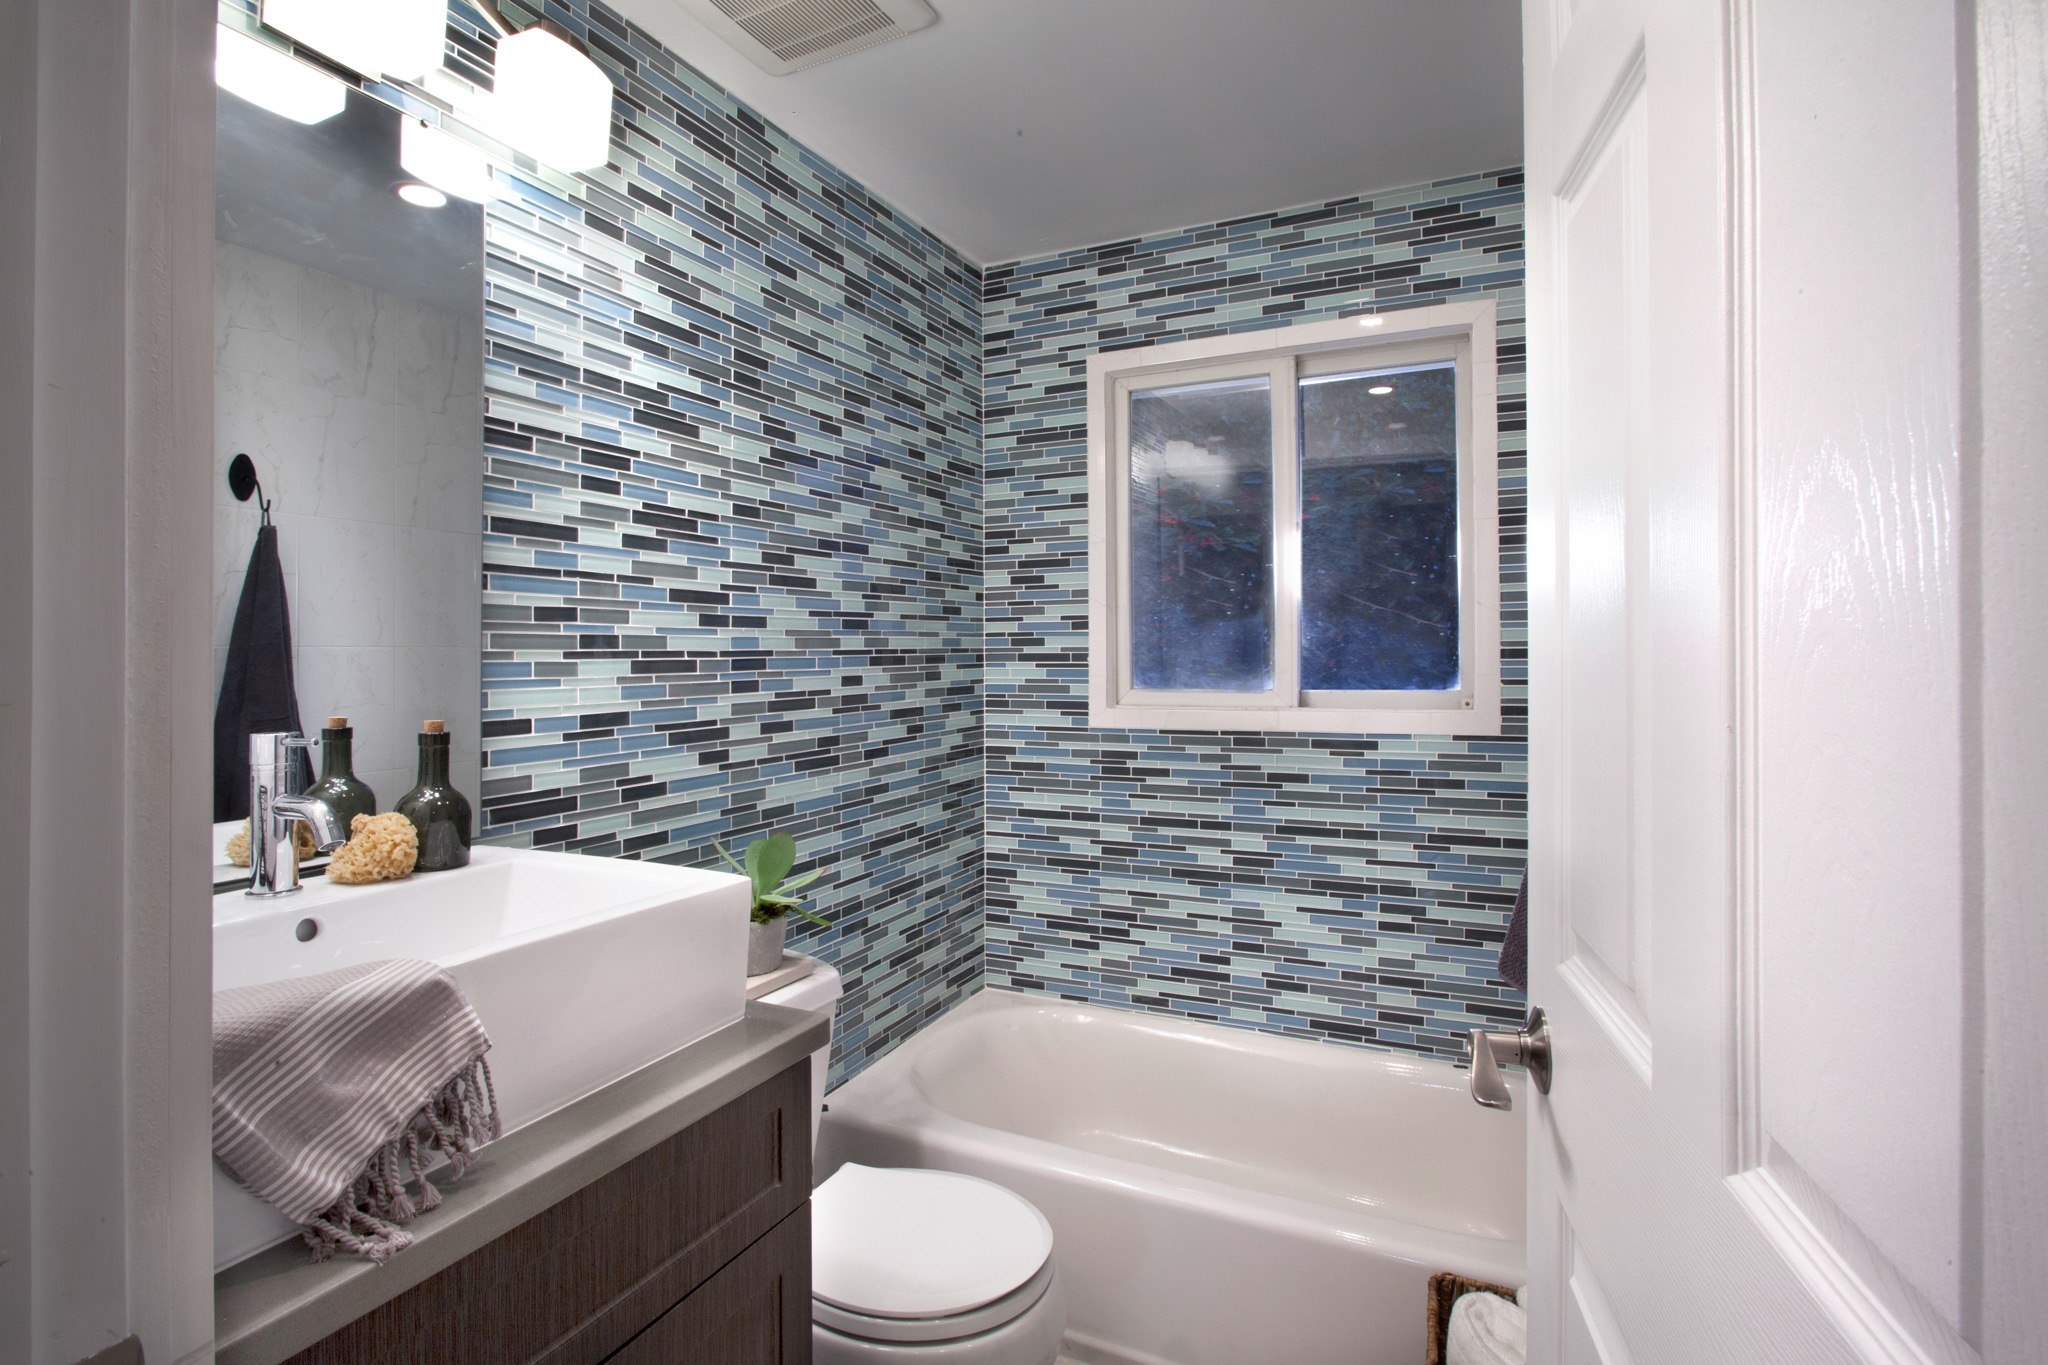 Mosaic Ceramic Tile Wall Decor For Modern Small Apartment Bathroom (Image 14 of 18)